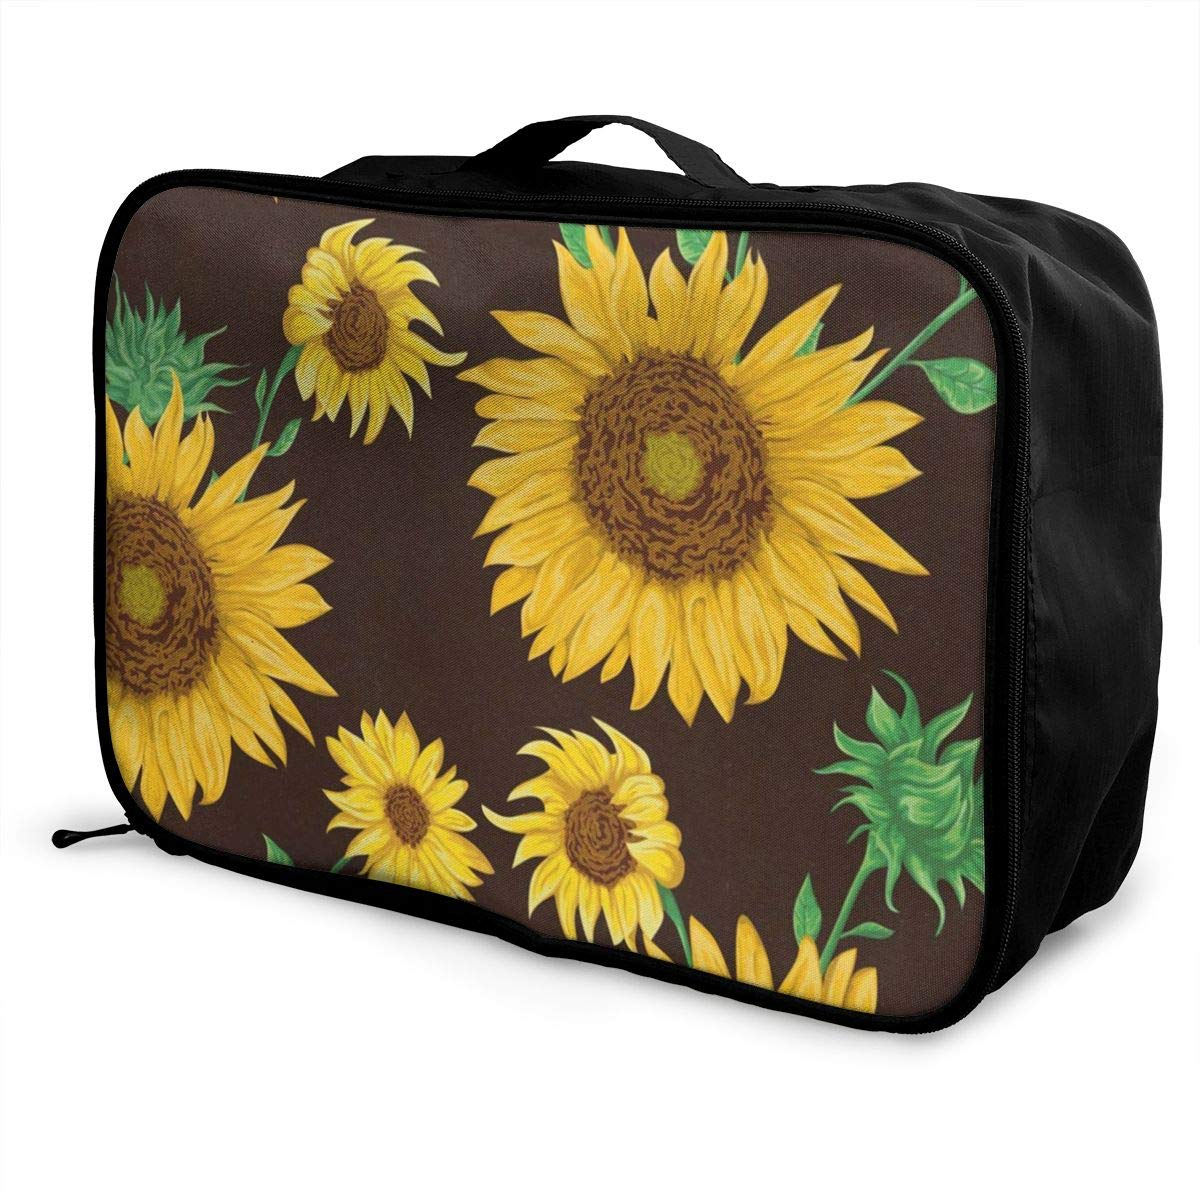 Travel Bags Sunflowers Collection Portable Suitcase Trolley Handle Luggage Bag